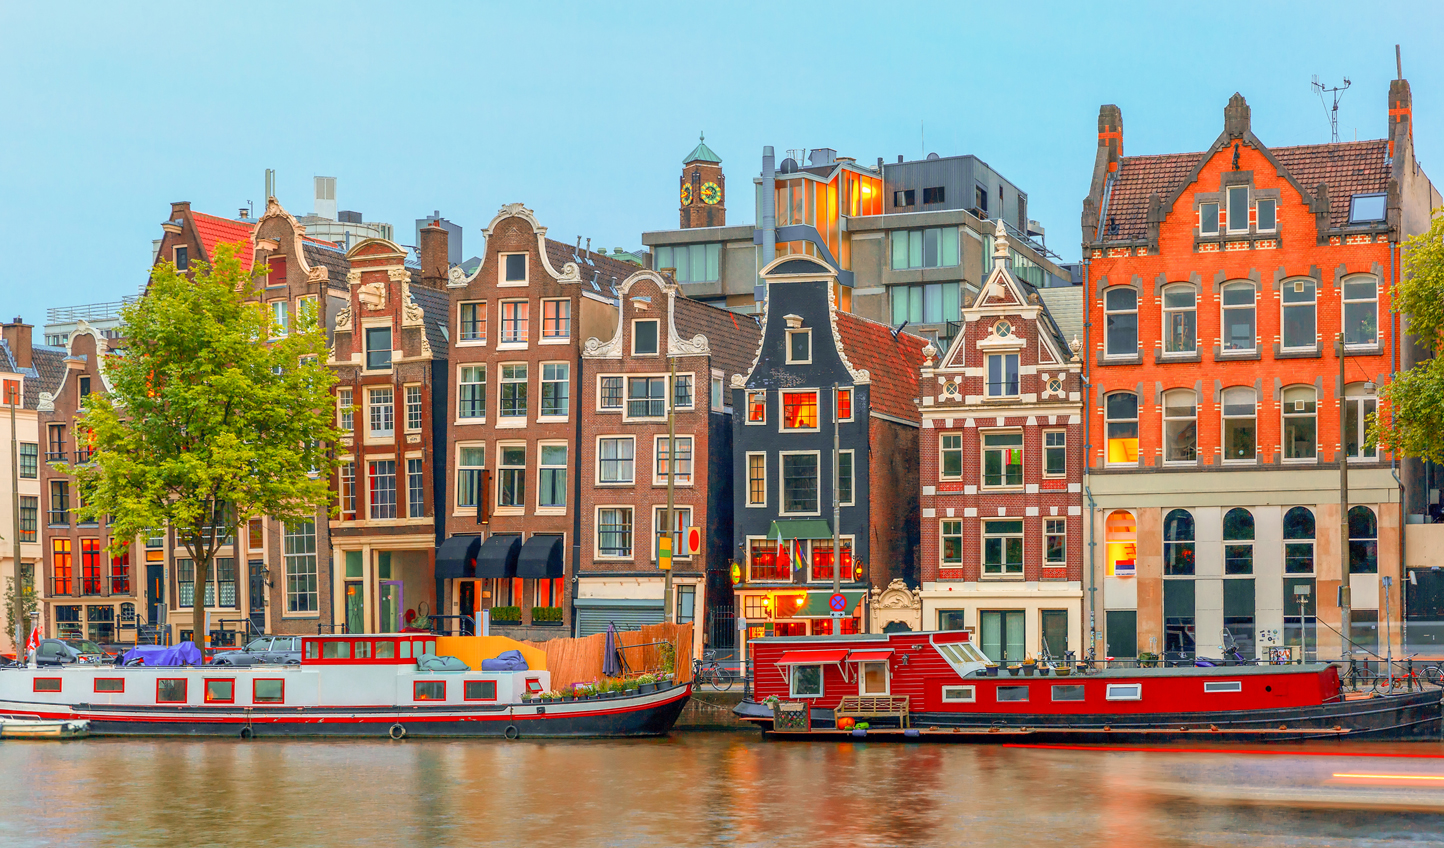 Admire the stunning canal architecture of Amsterdam